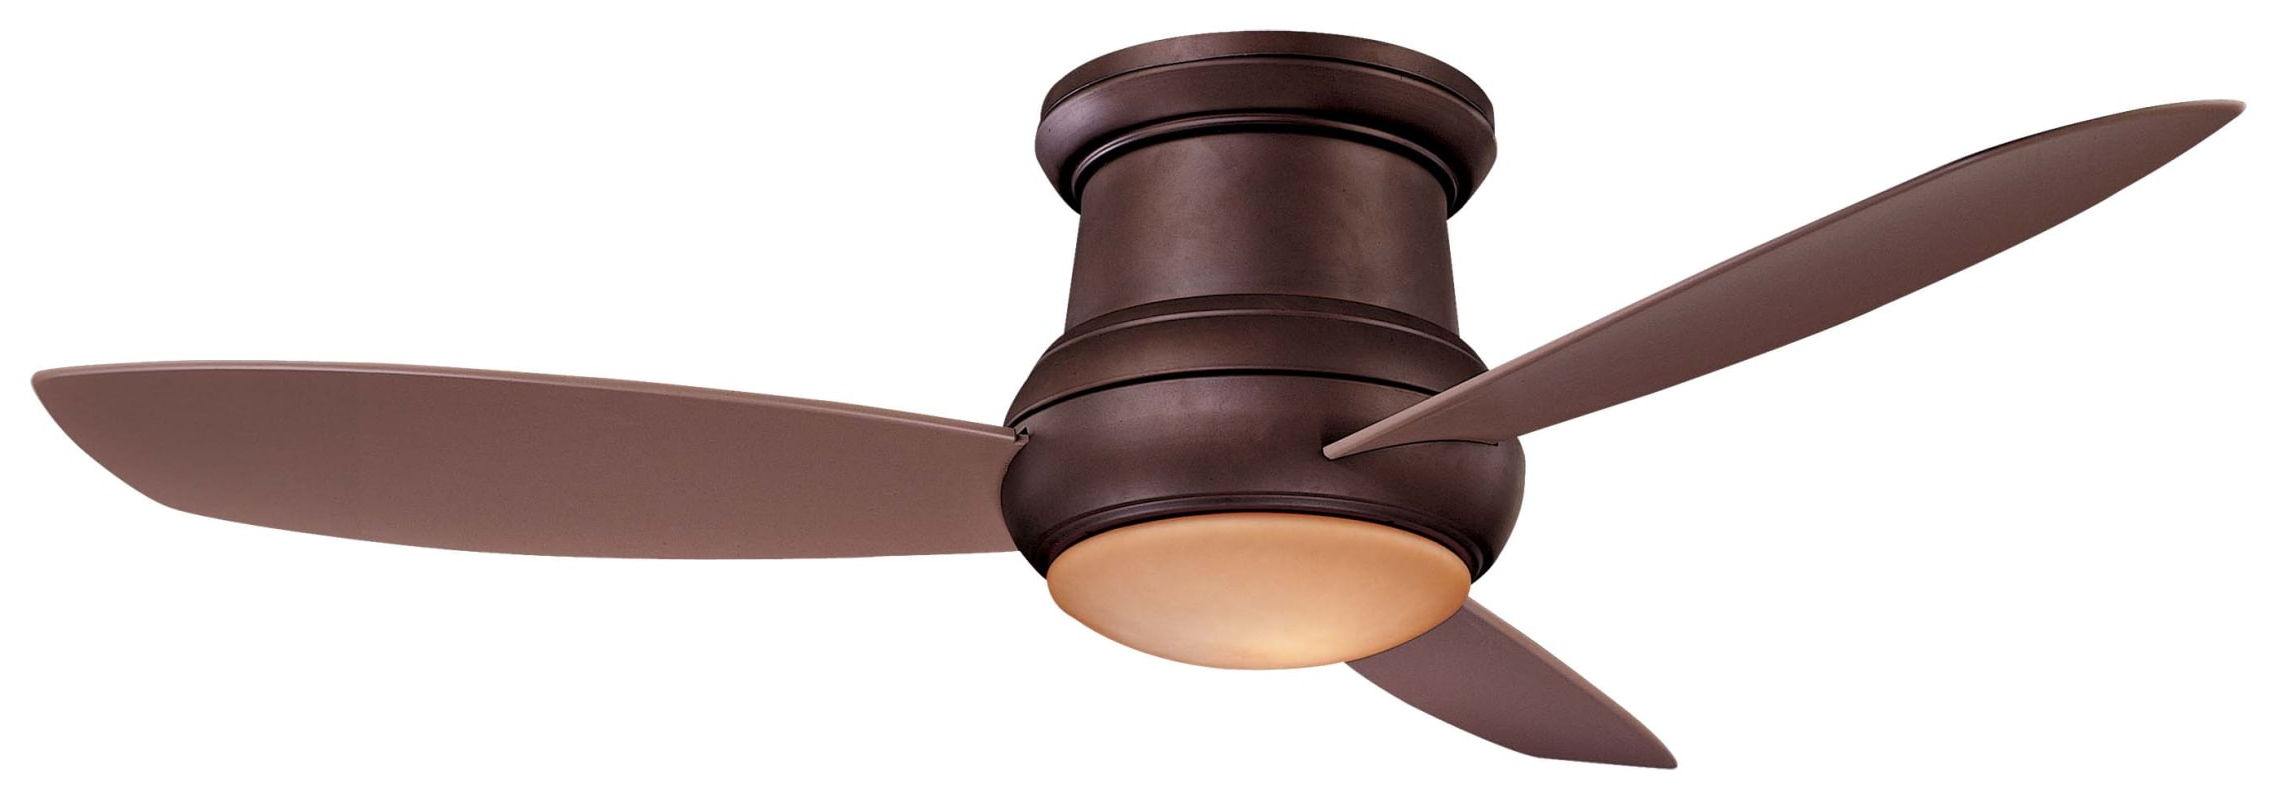 """2019 Minkaaire Concept Ii Outdoor 52 Led 3 Blade 52"""" Flushmount Within Concept Ii 3 Blade Led Ceiling Fans With Remote (View 2 of 20)"""